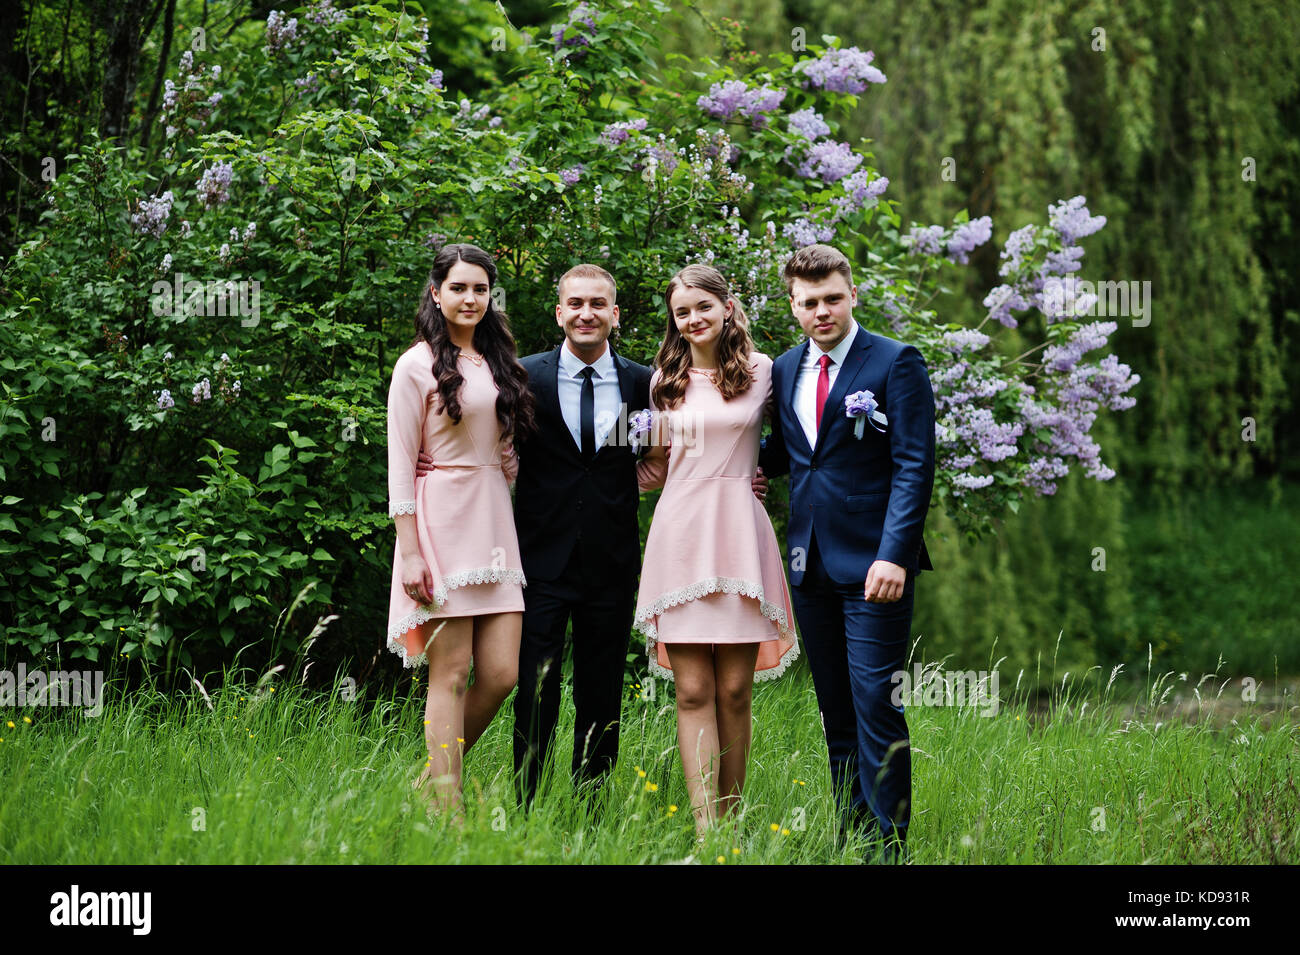 7e794c6bd90 Bridesmaids in pink dresses posing with handsome groomsmen in tuxedos in  the park with blossoming trees in the background.